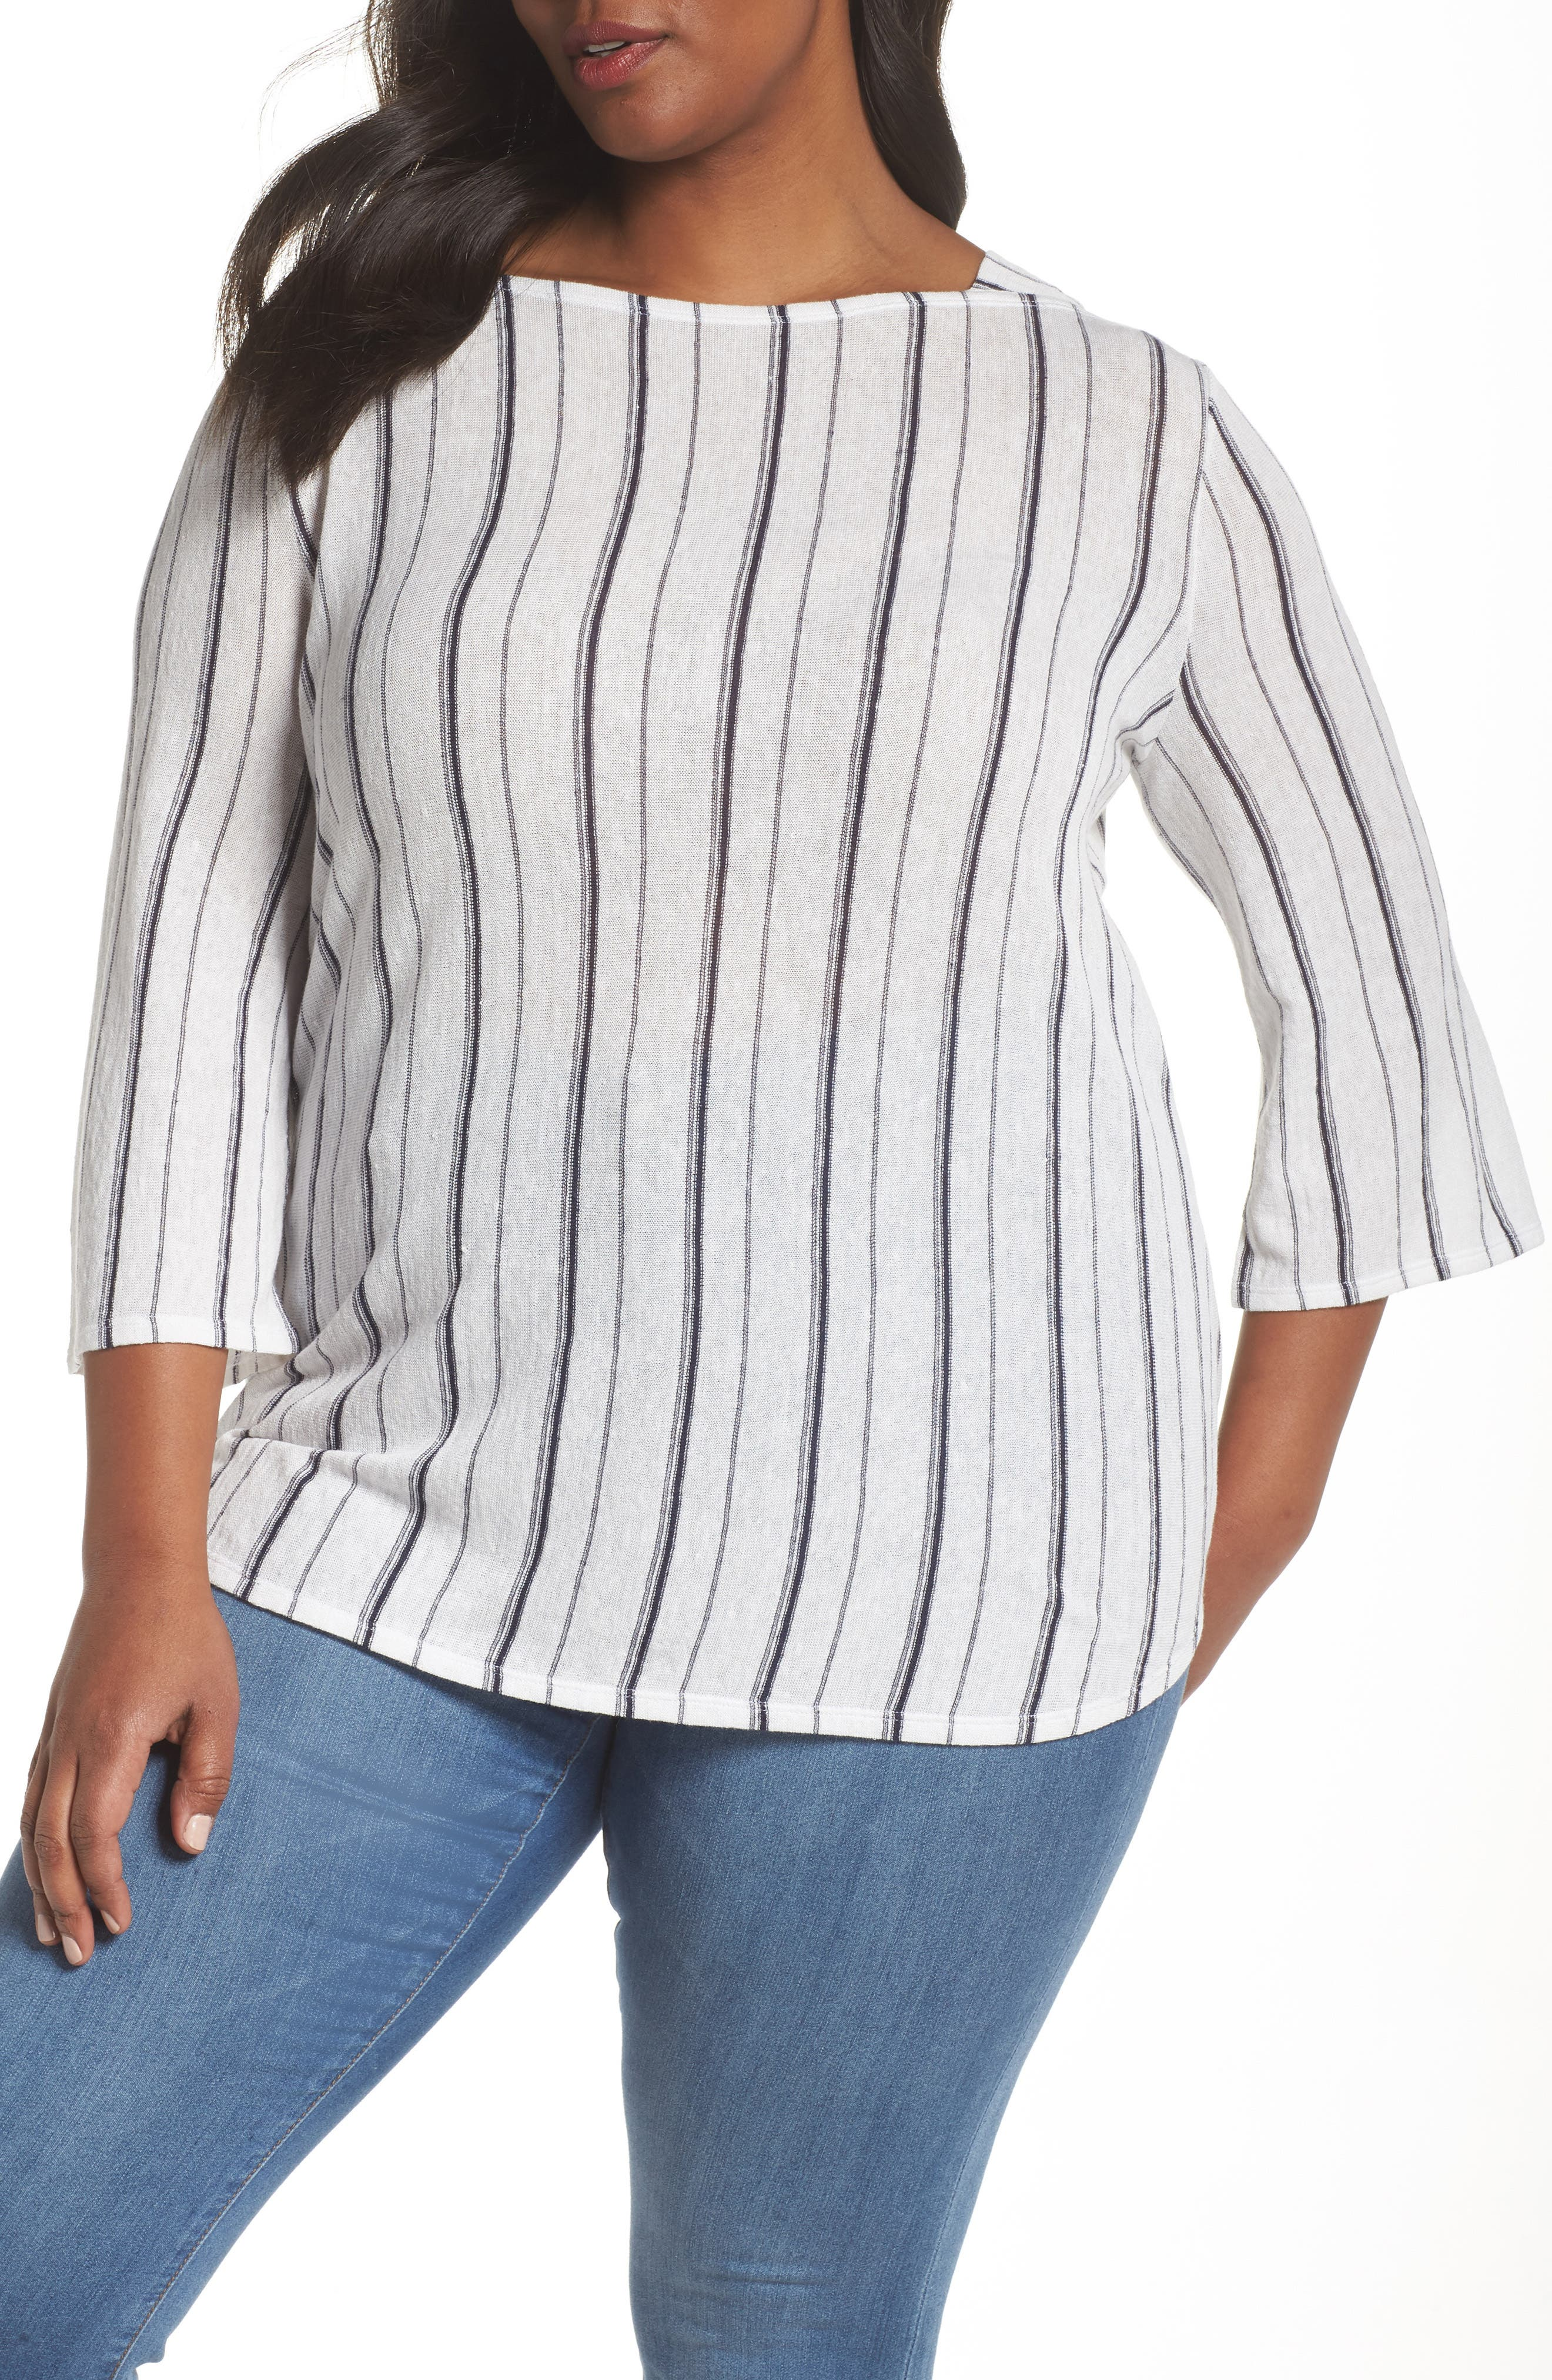 In Motion Stripe Top,                             Main thumbnail 1, color,                             439